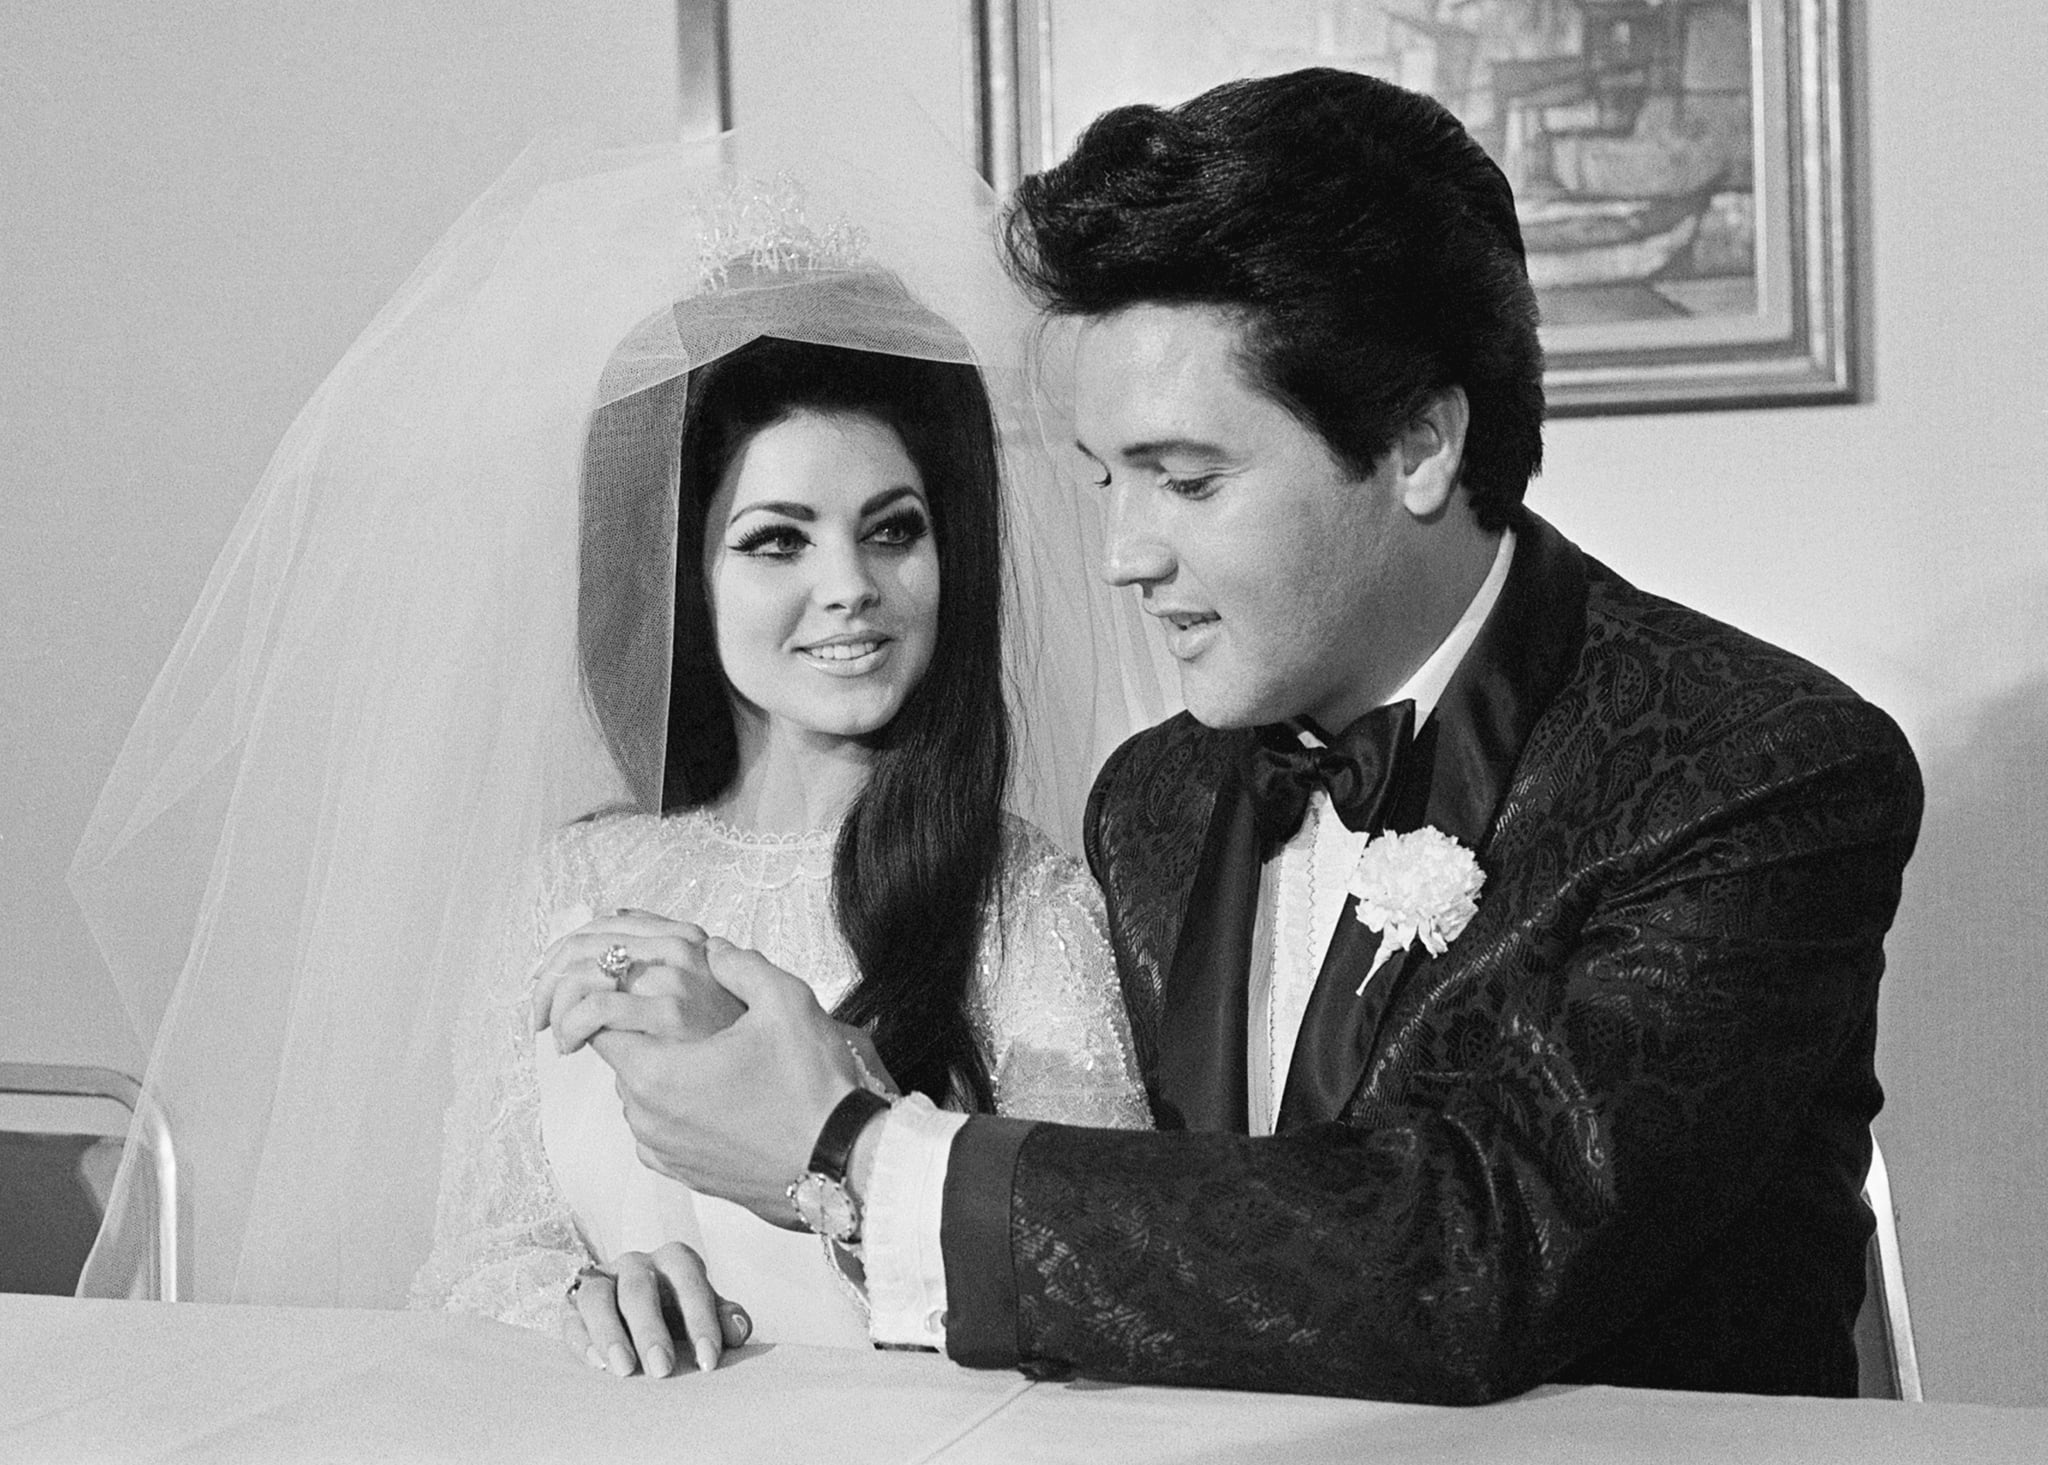 Elvis Presley shows off his wife Princilla's three-carat diamond wedding ring on their wedding day in Las Vegas.